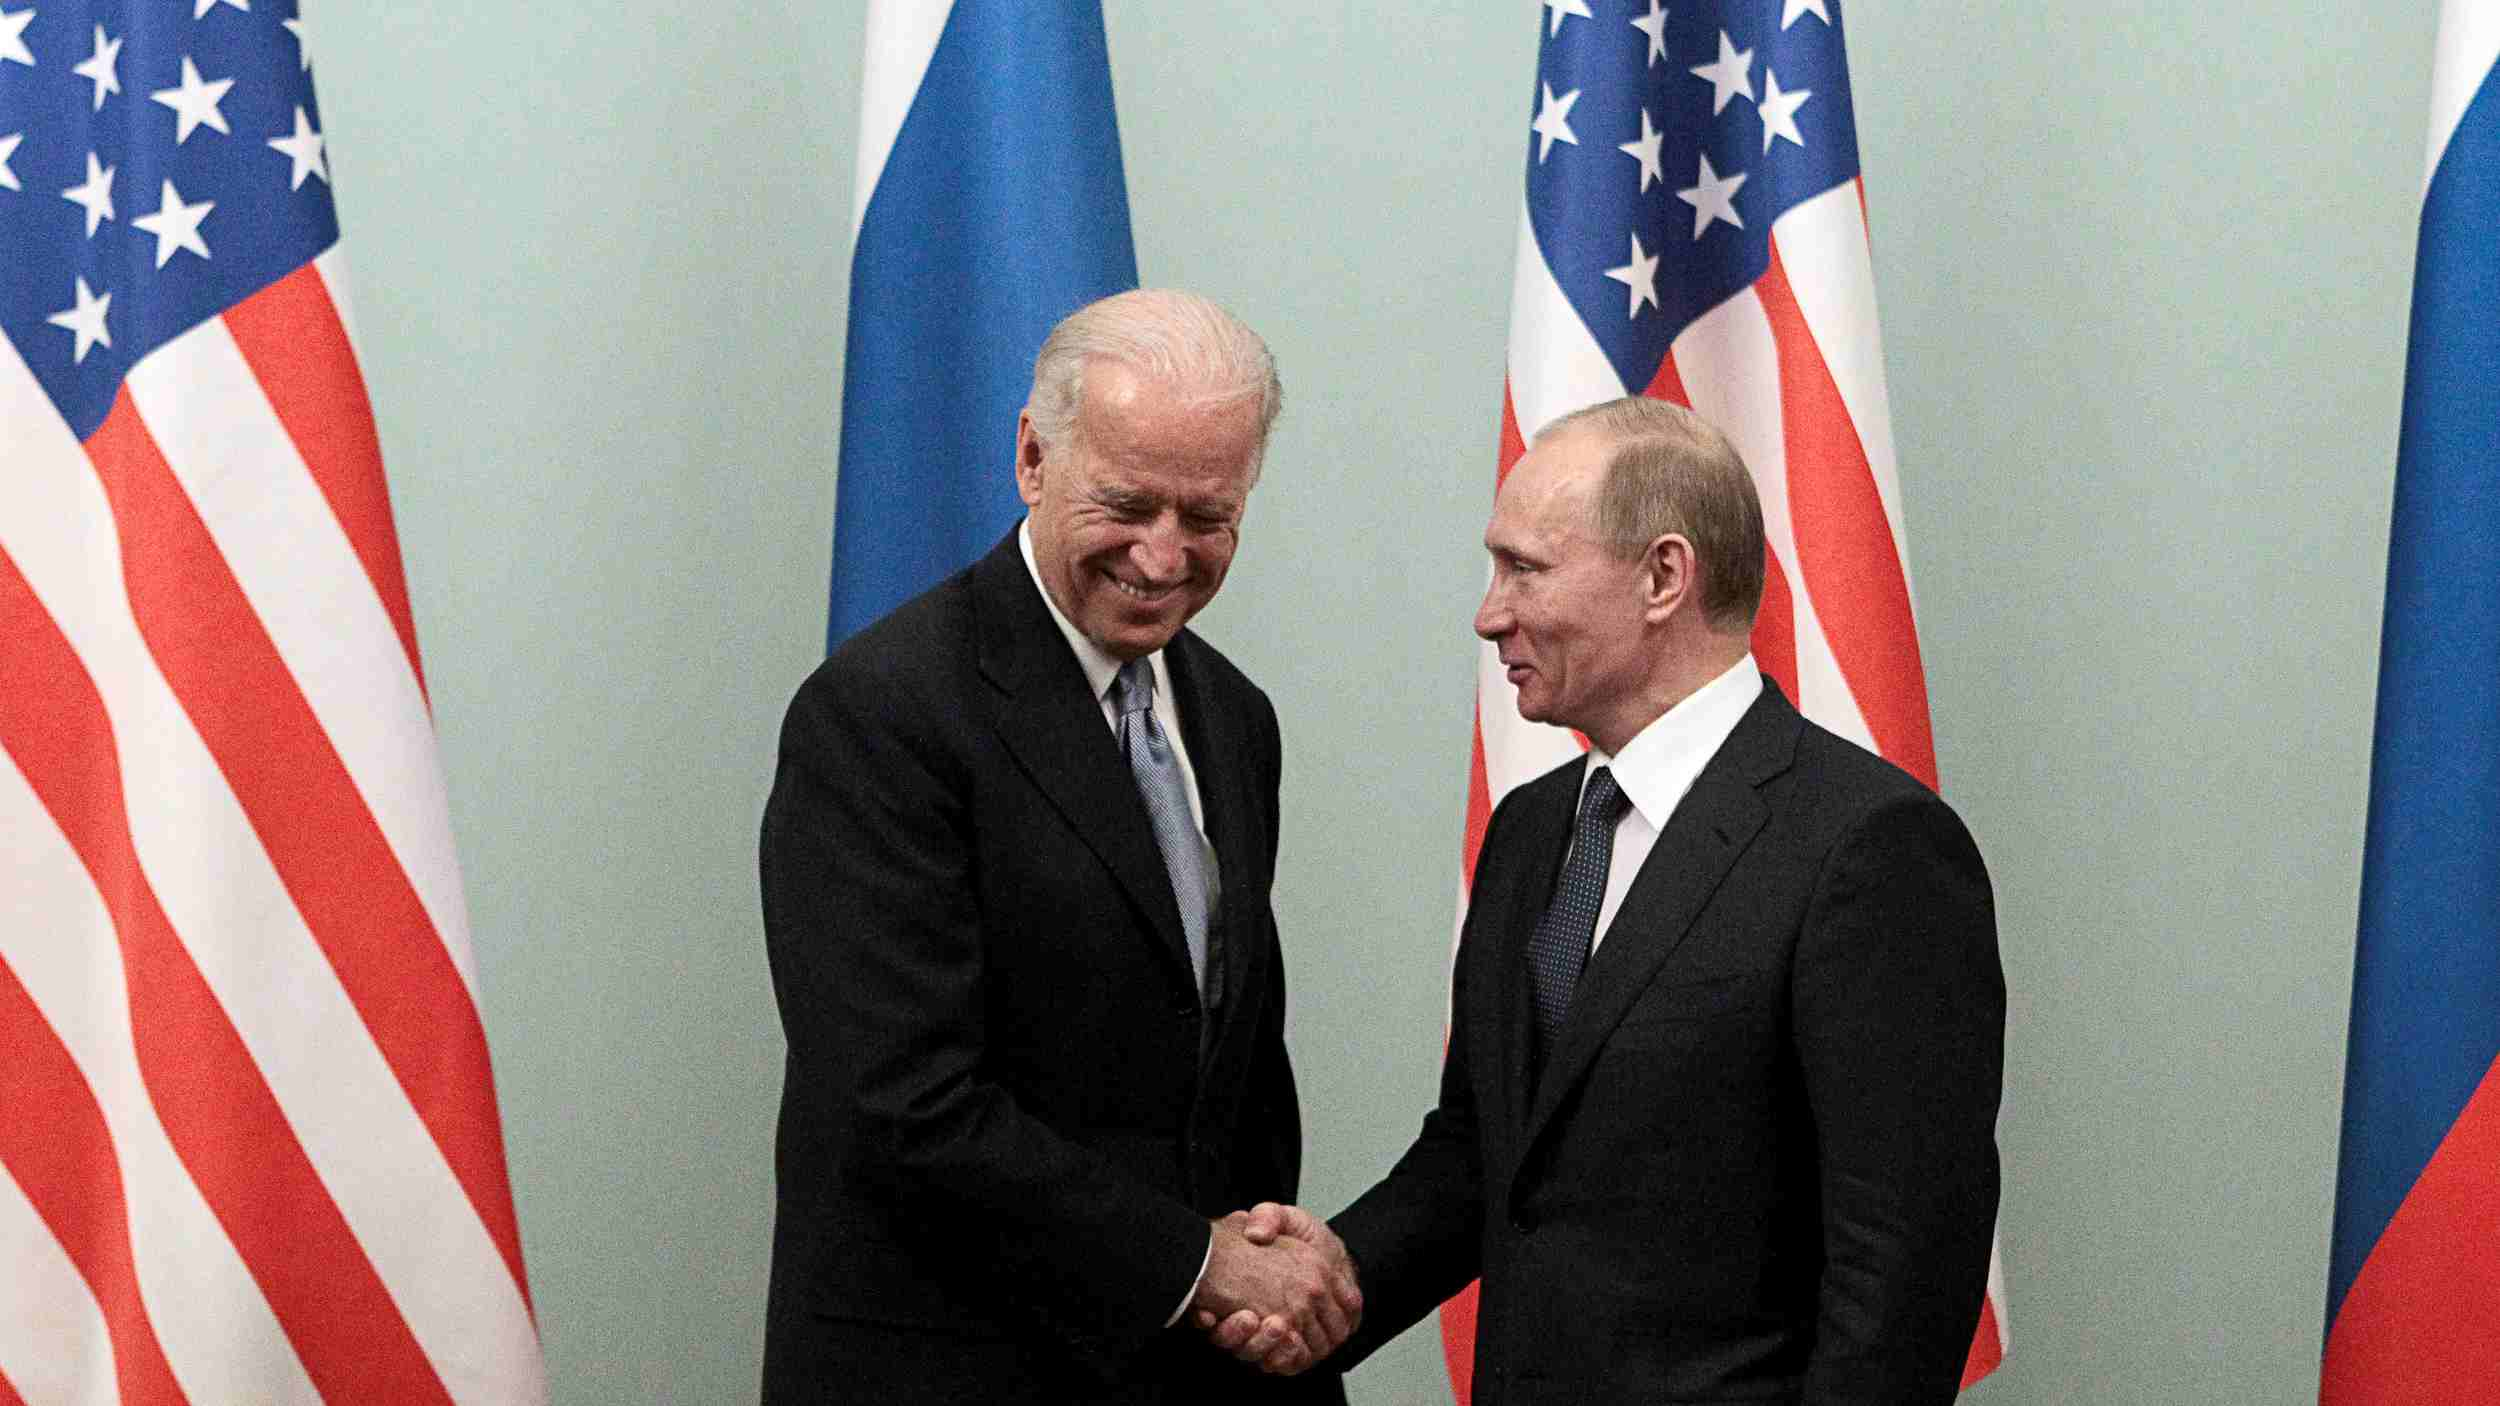 Photo: Russian Prime Minister Vladimir Putin (R) shakes hands with U.S. Vice President Joe Biden during their meeting in Moscow March 10, 2011. Credit: REUTERS/Alexander Natruskin/File Photo